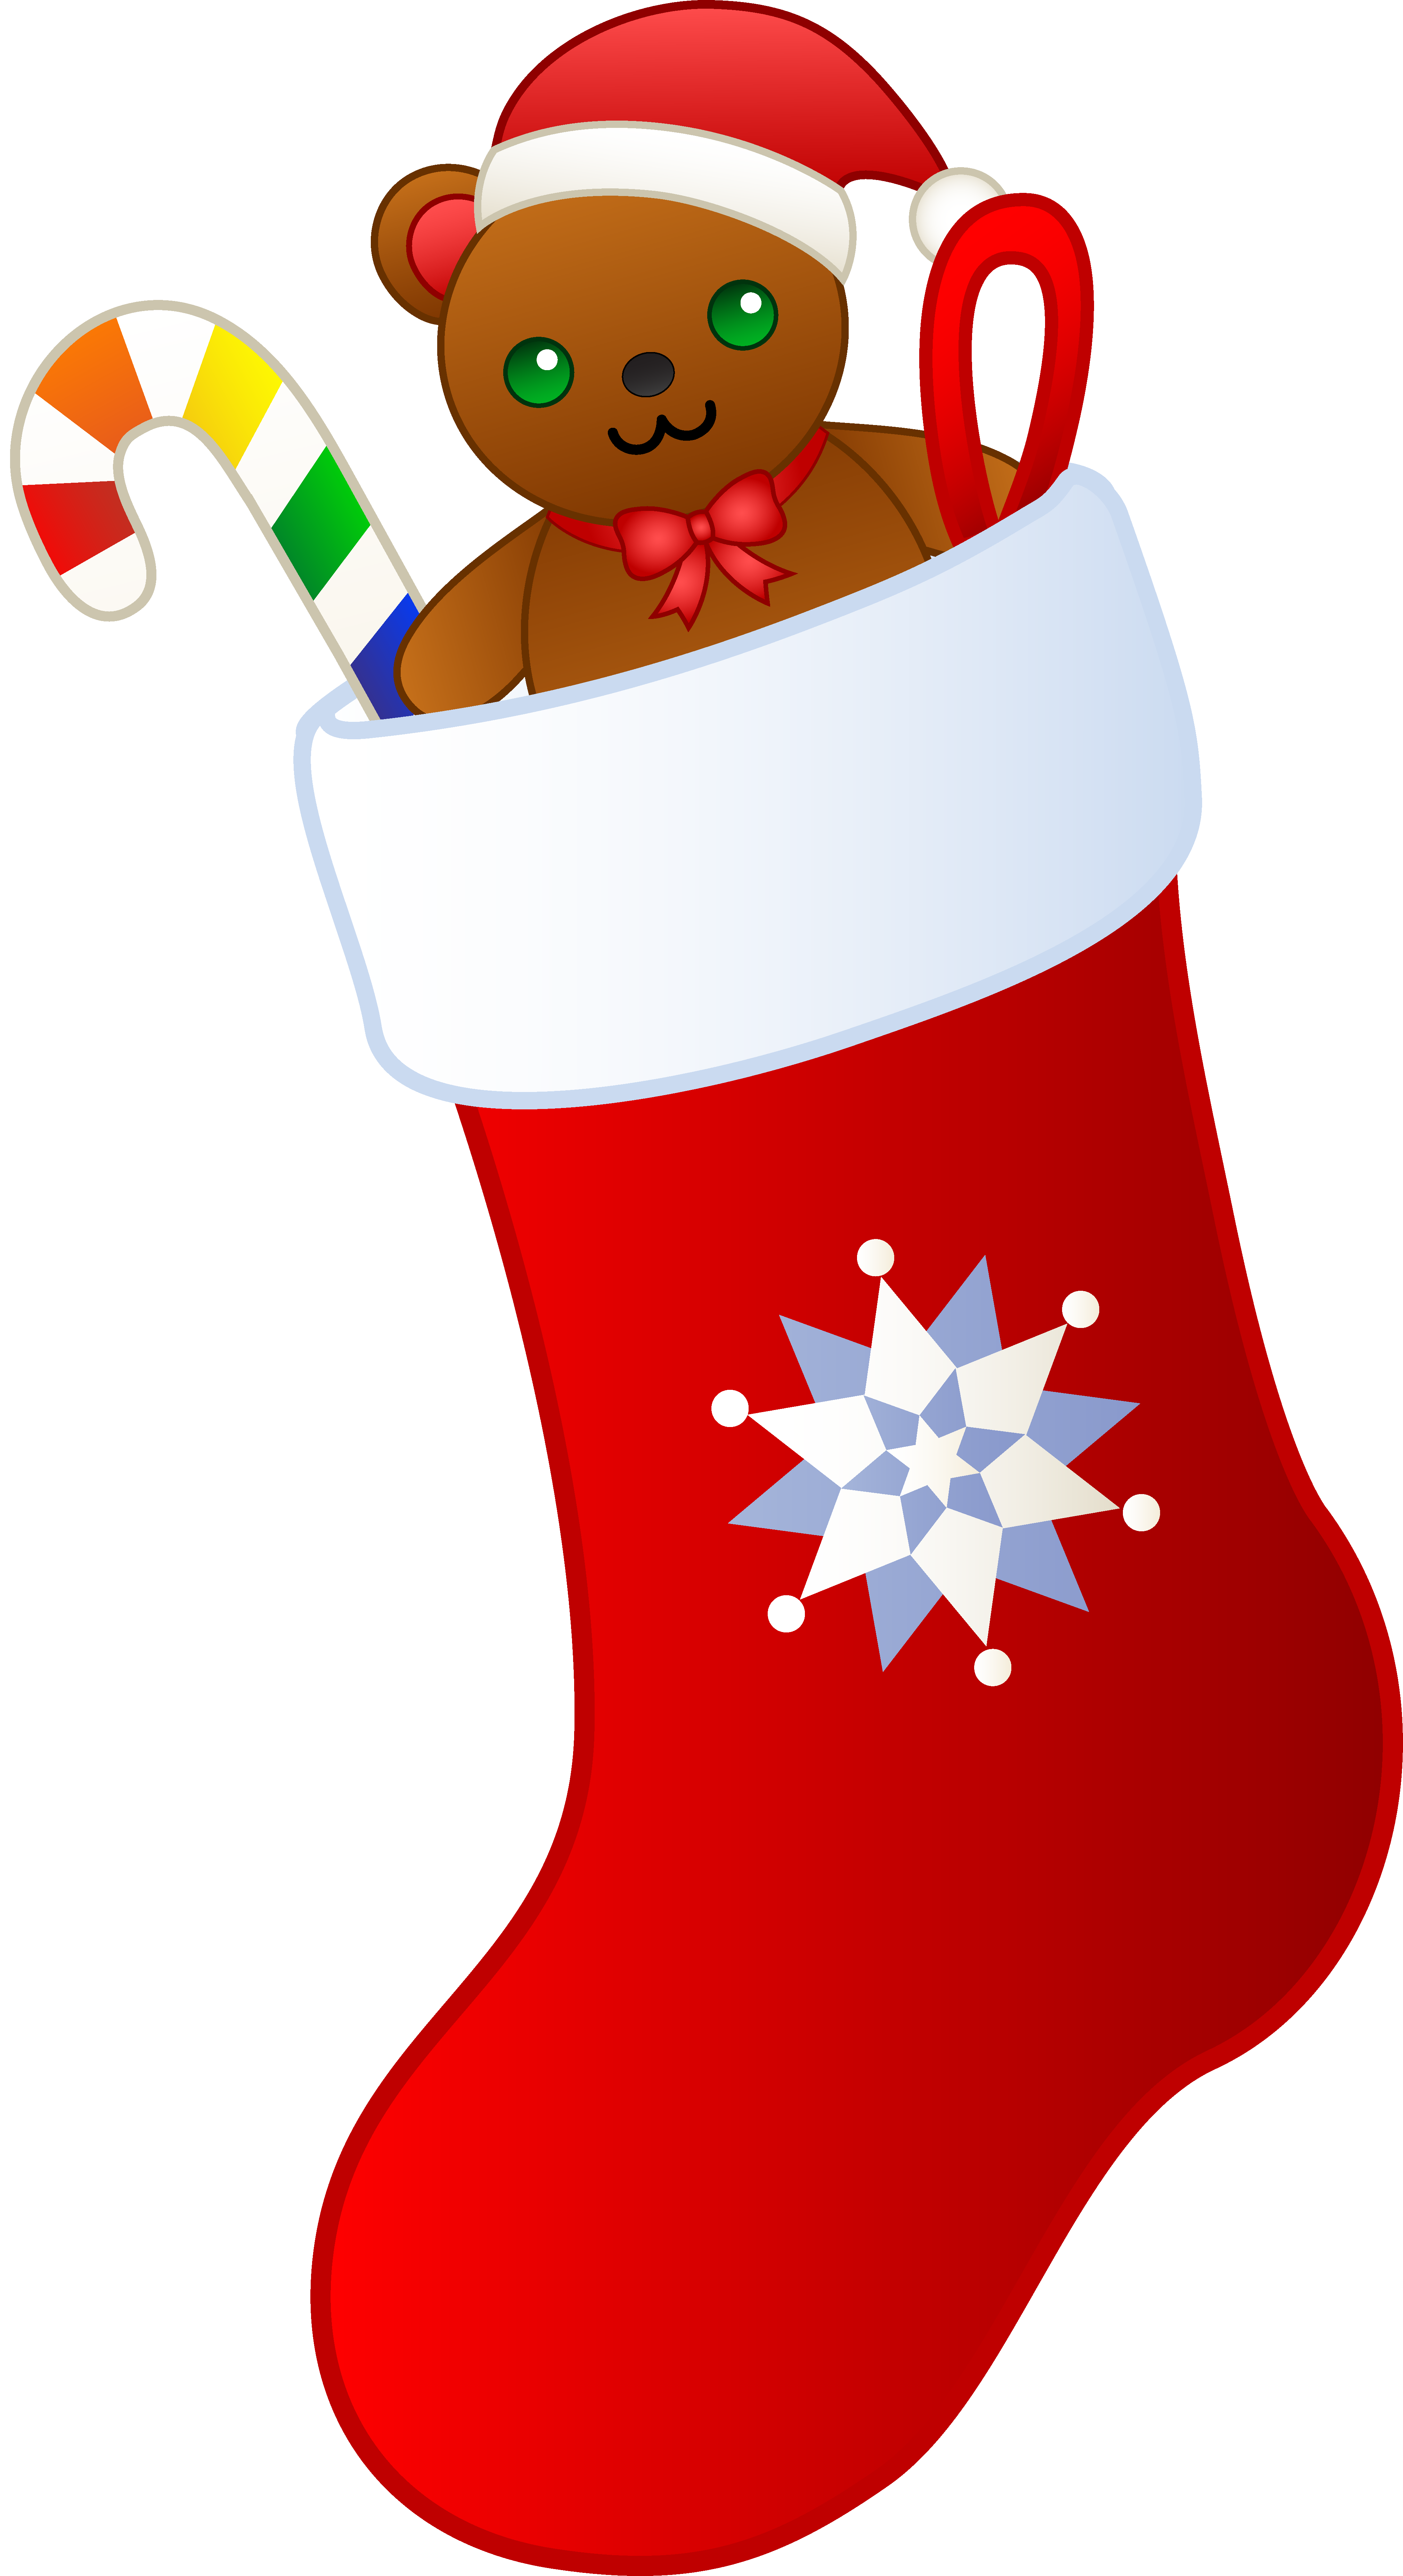 Walmart christmas clipart clipart free library Walmart Cliparts | Free download best Walmart Cliparts on ... clipart free library